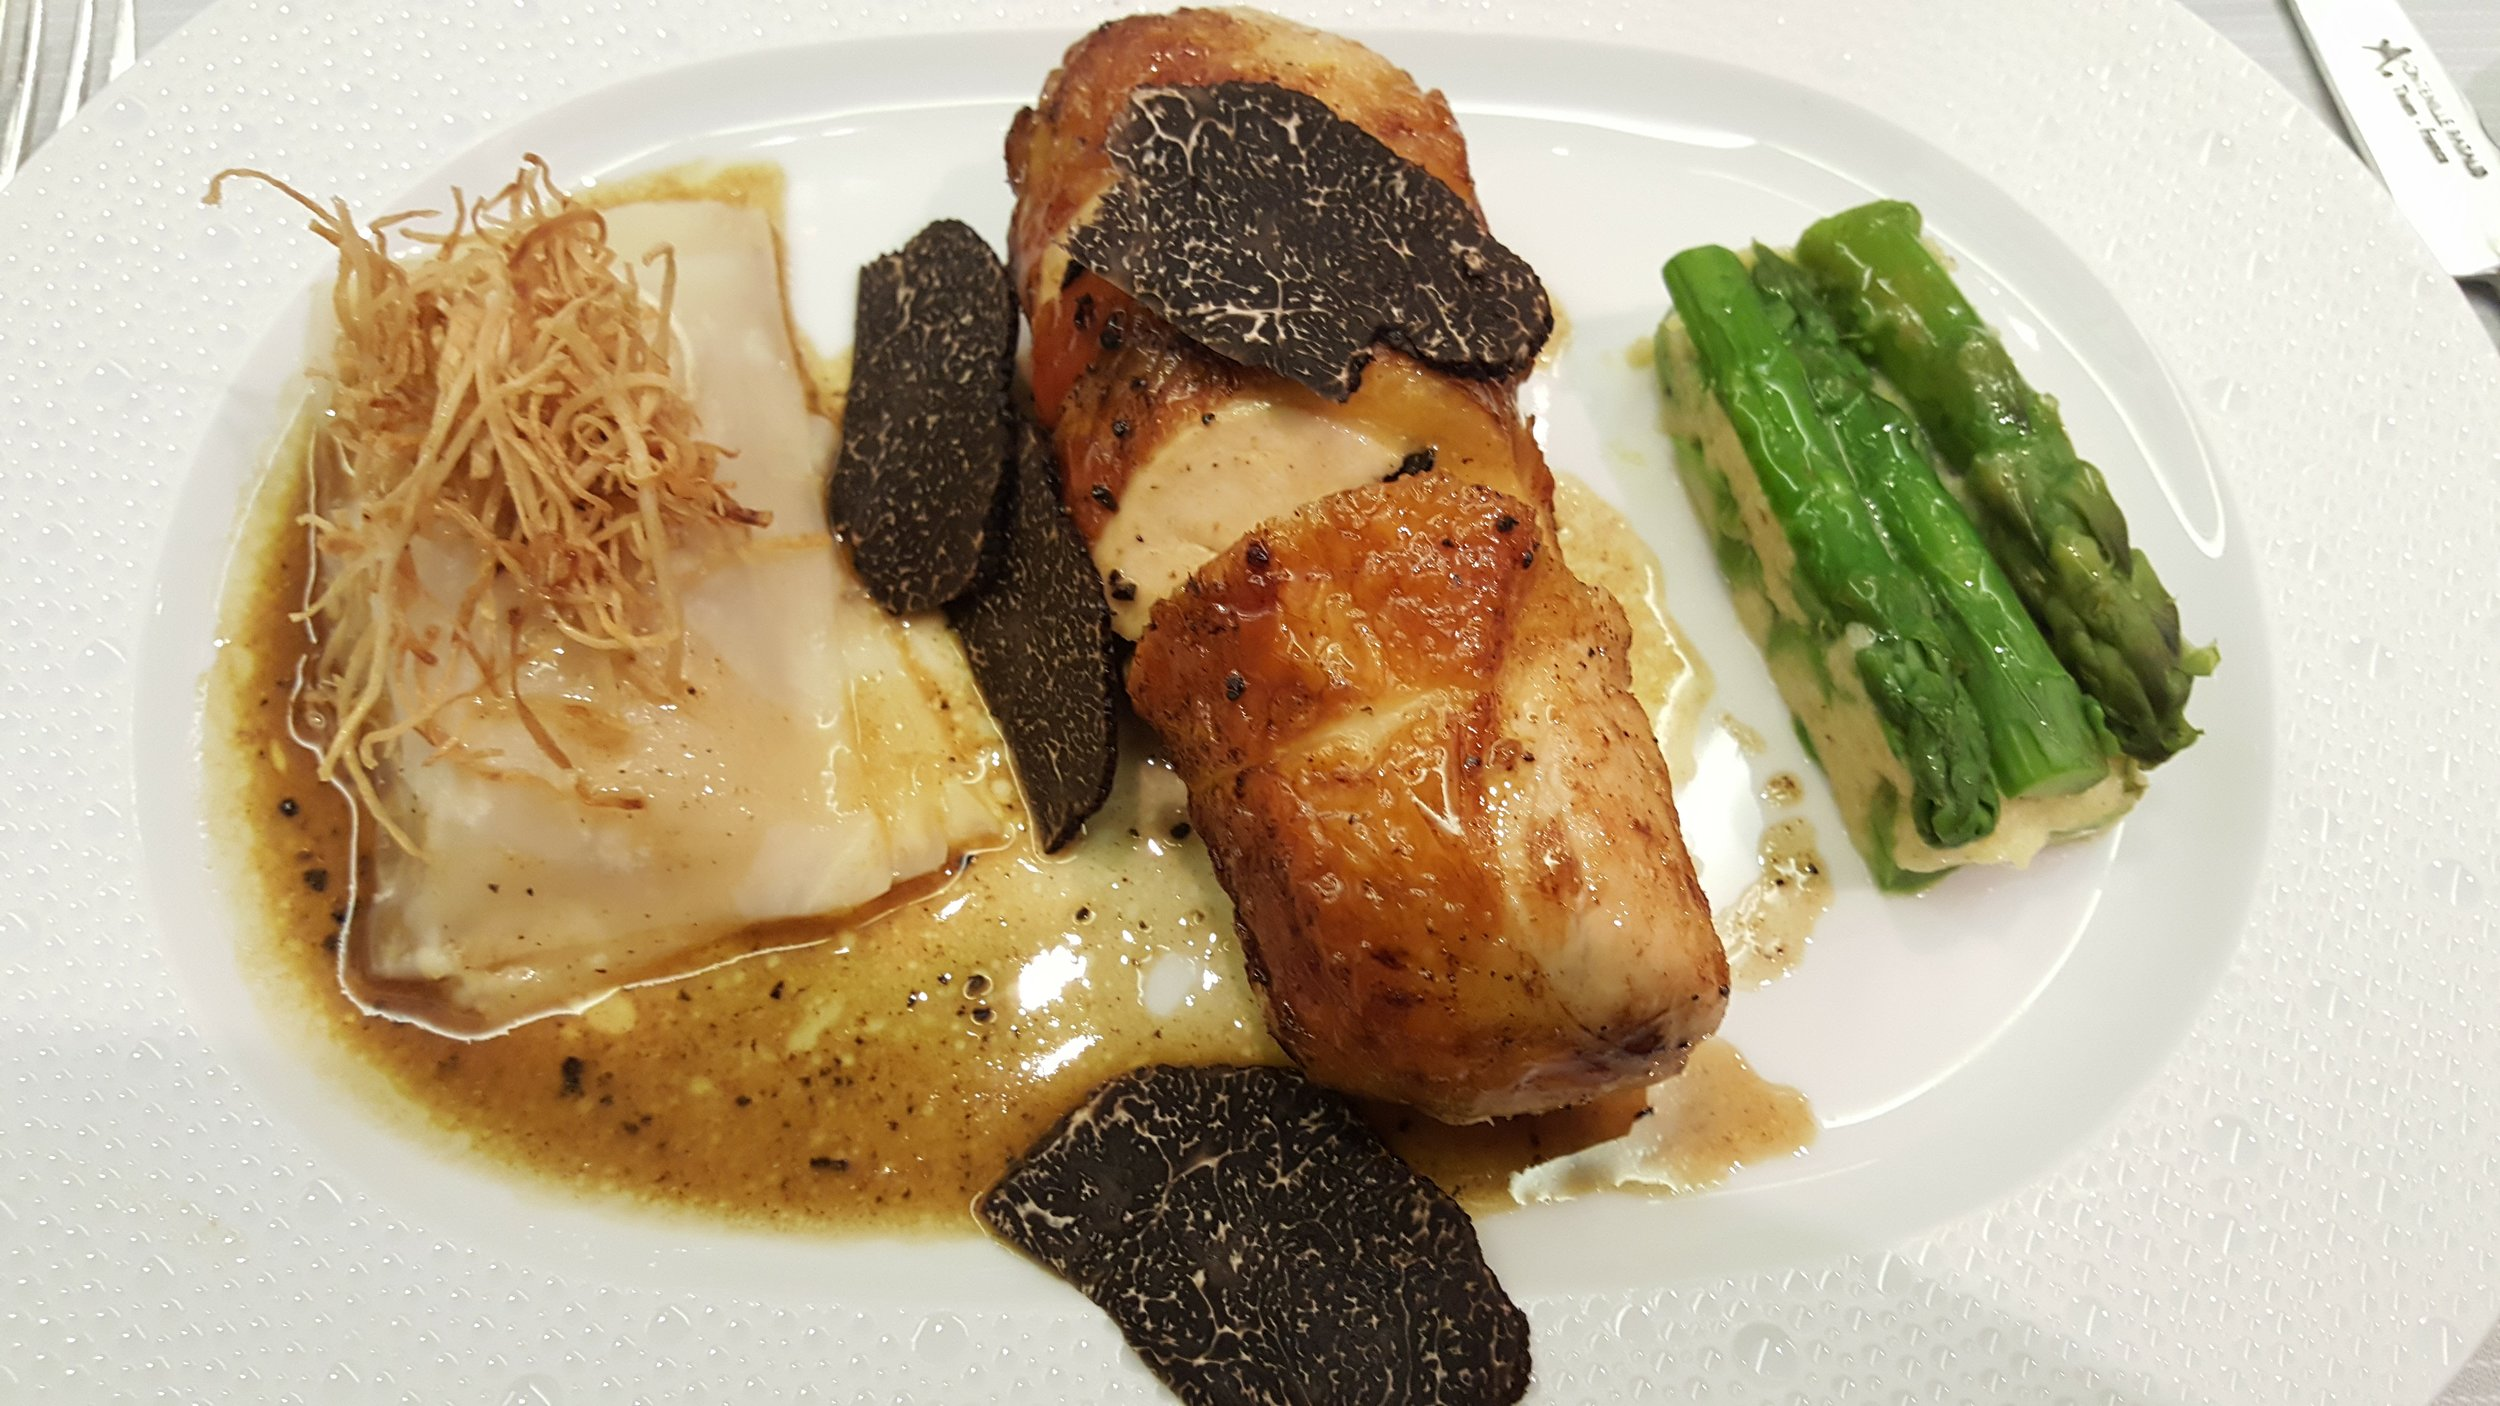 5: Young hen, black truffle, asparagus